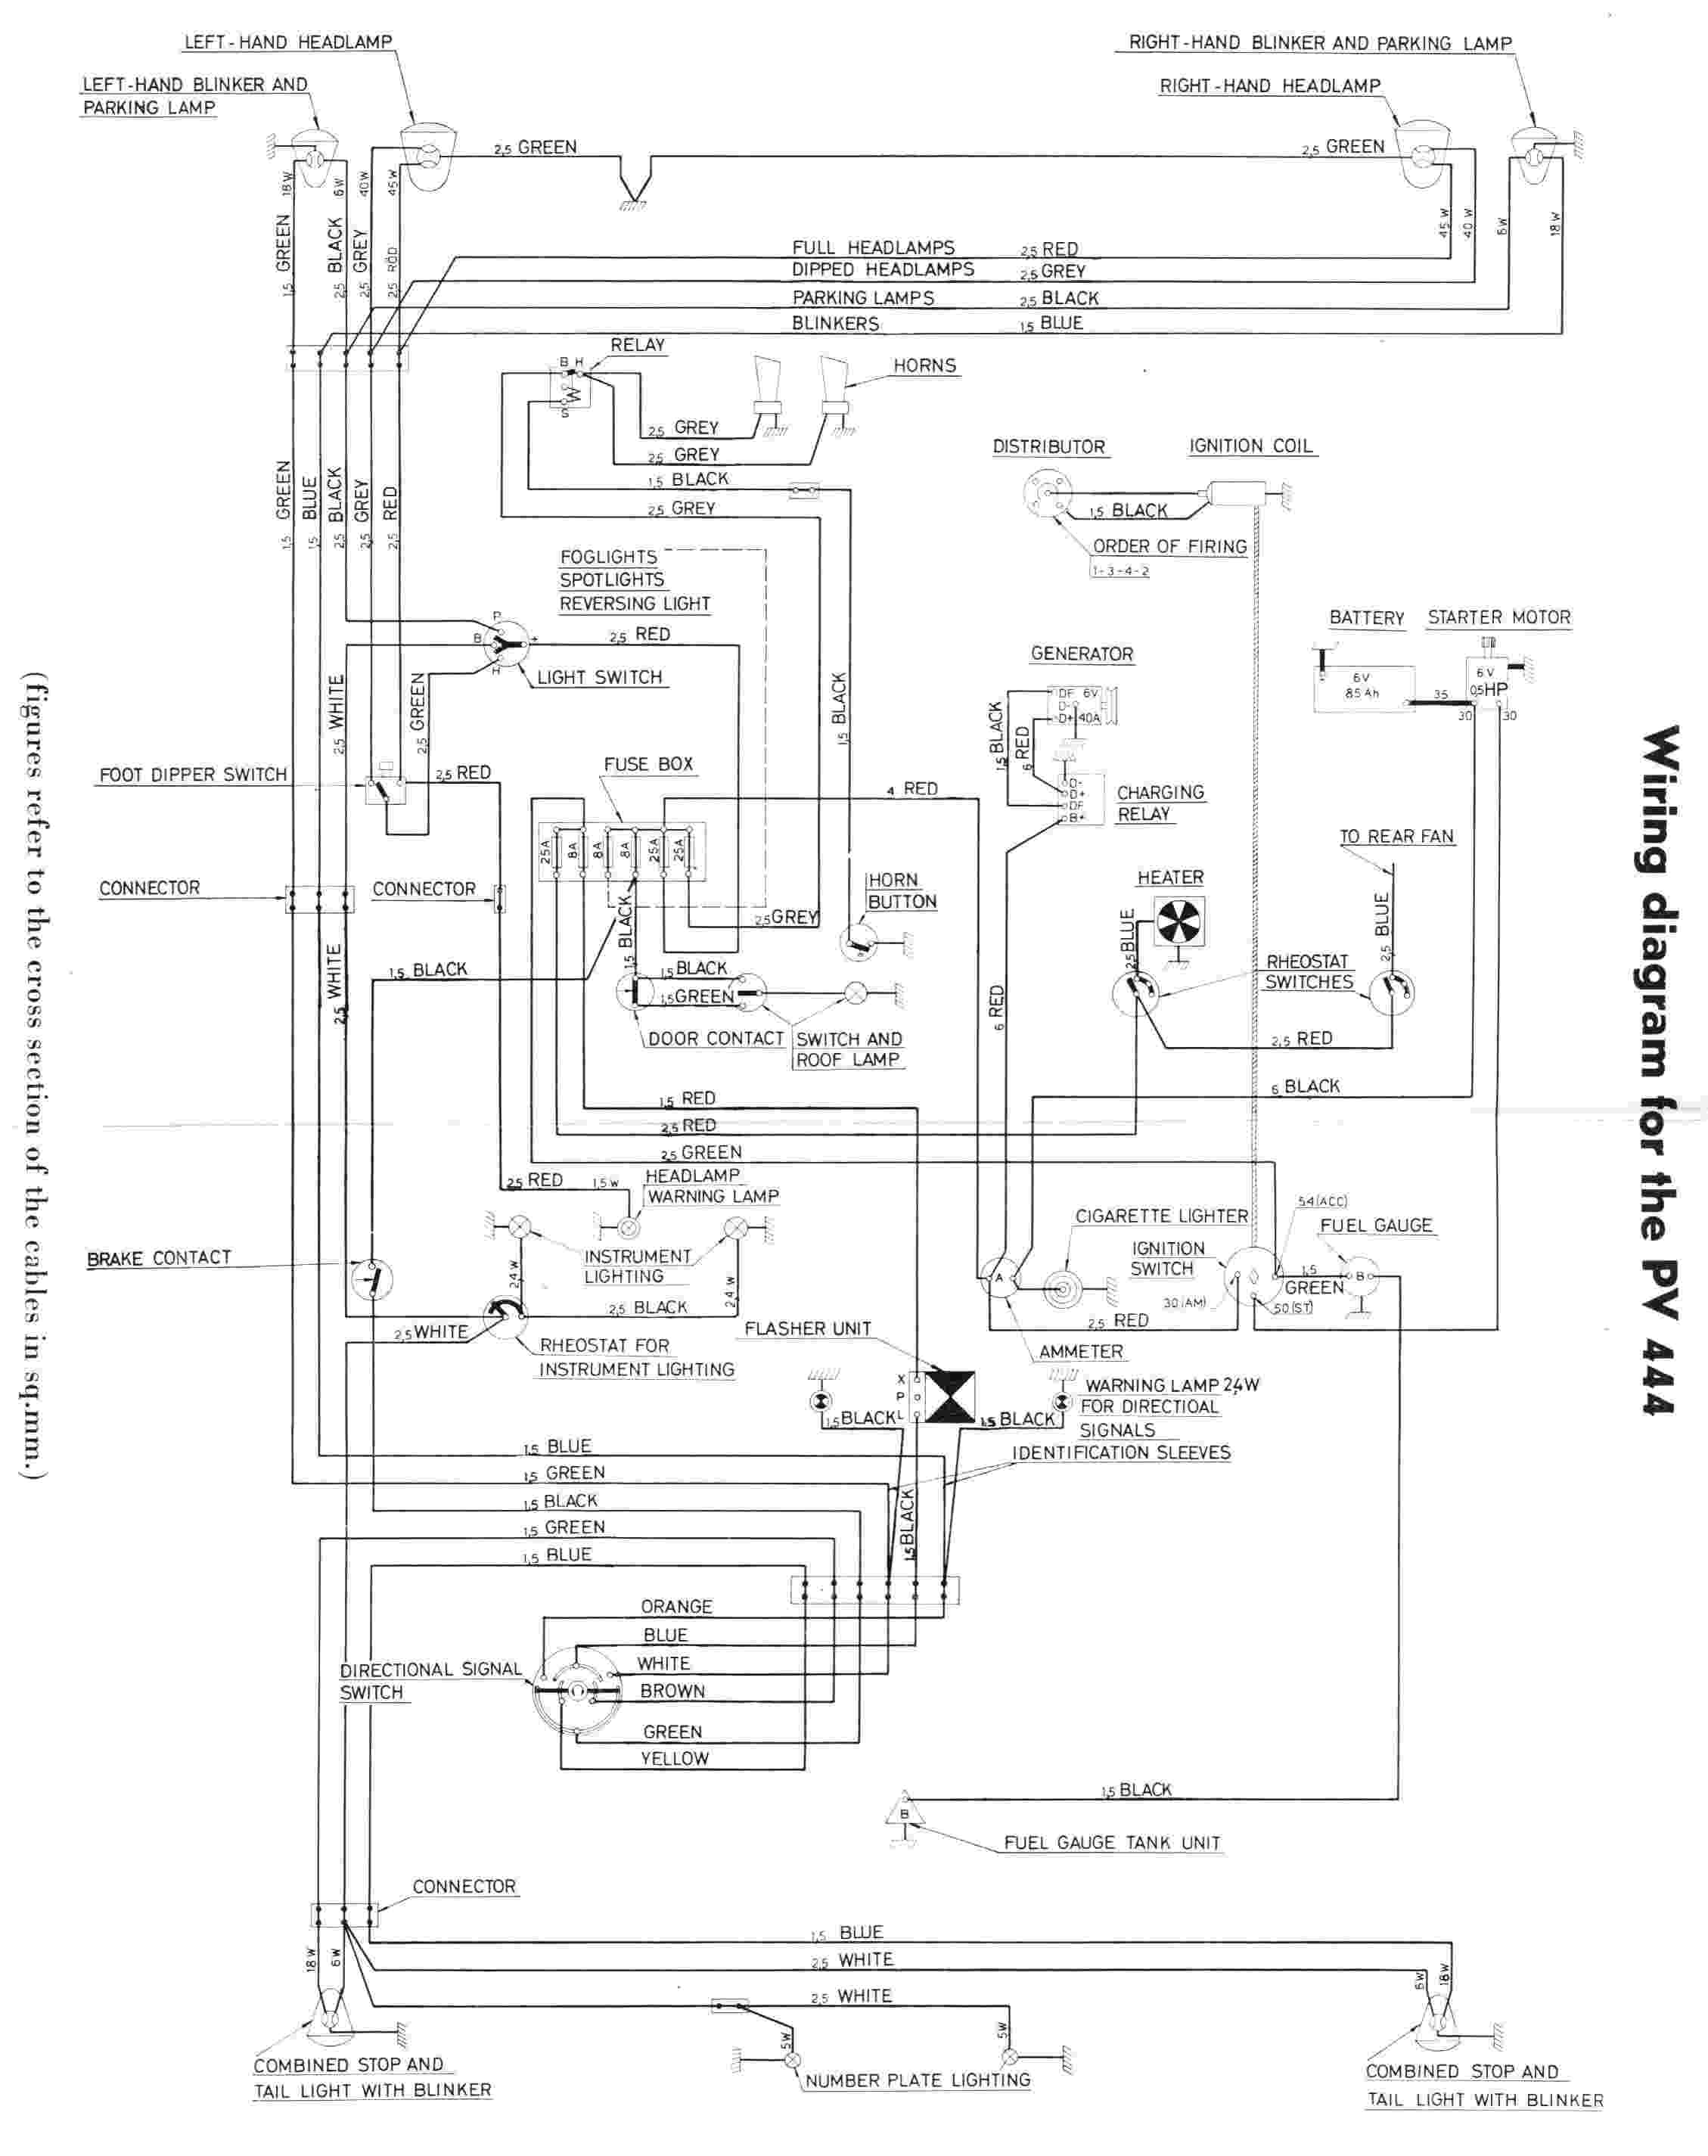 small resolution of volvo 360 wiring diagram online wiring diagramvn alternator wiring diagram wiring diagrams volvo 360 wiring diagram